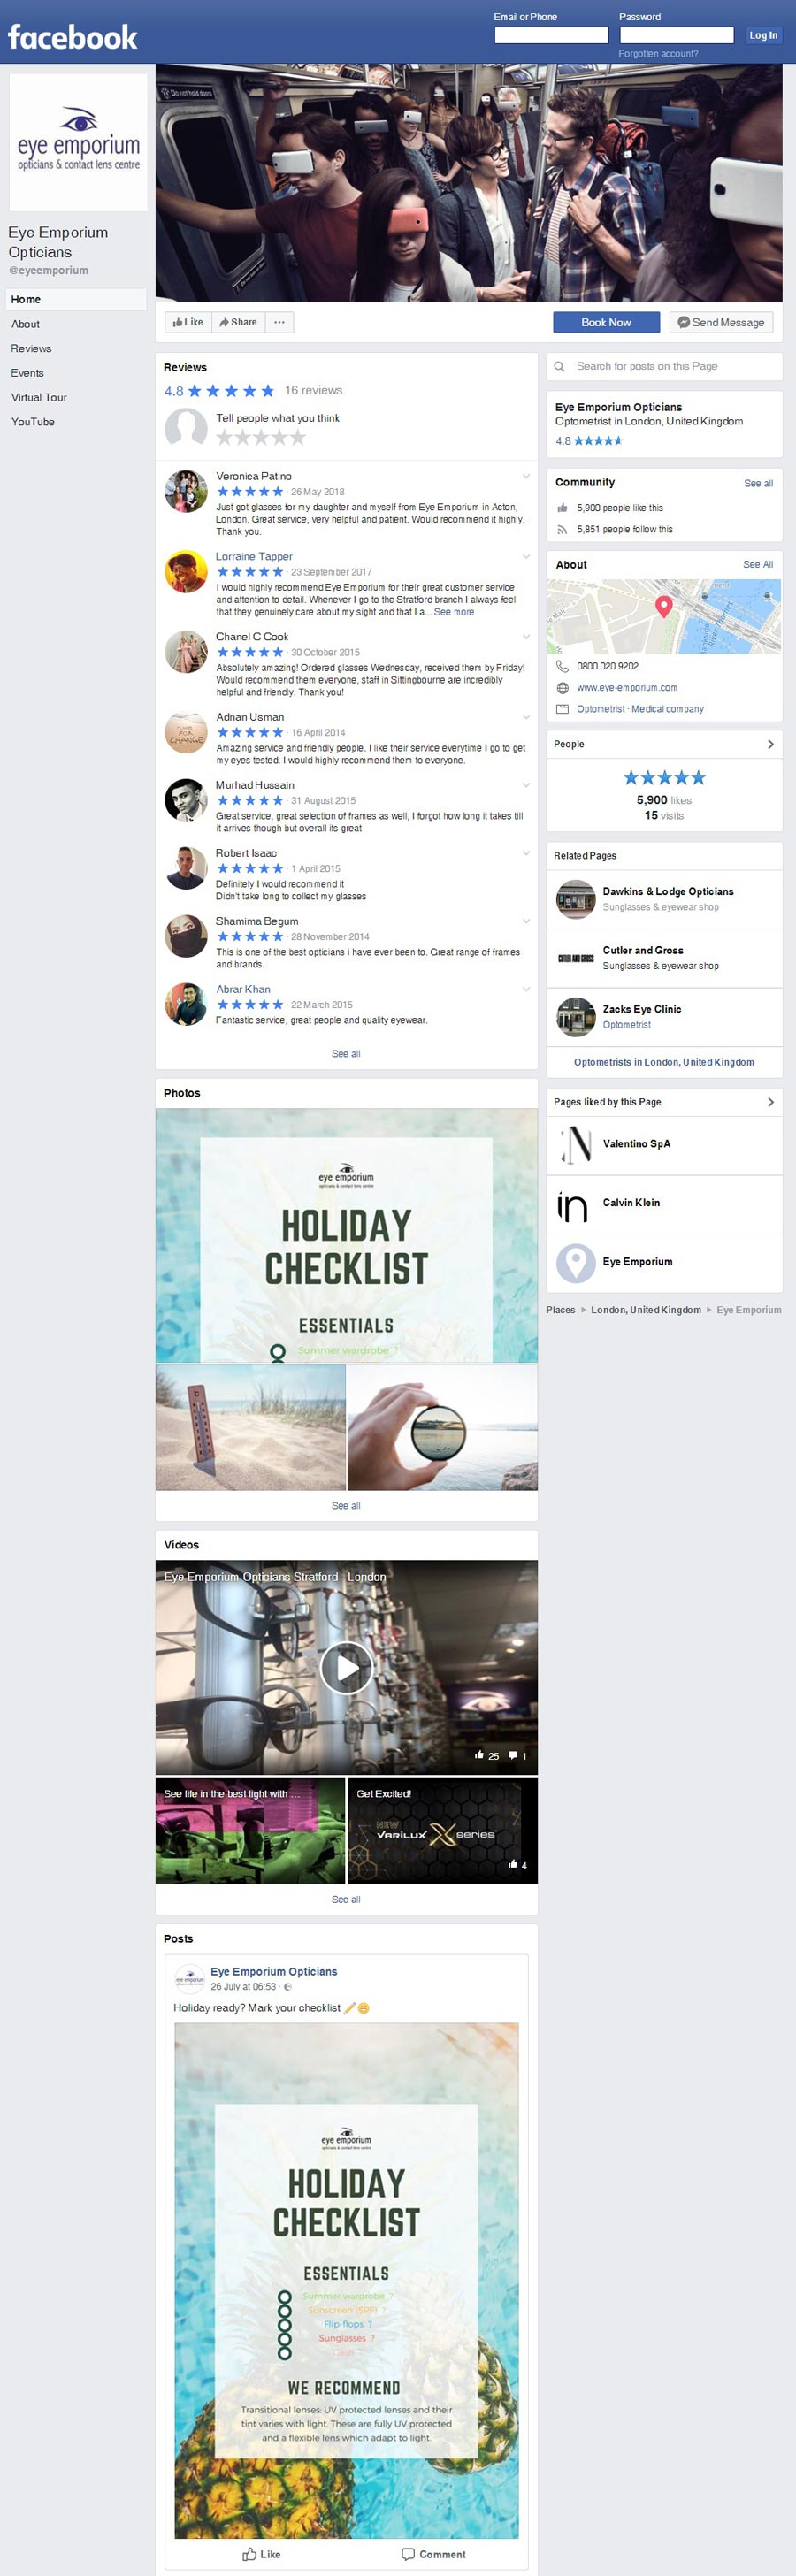 An example of facebook page for optometry practice